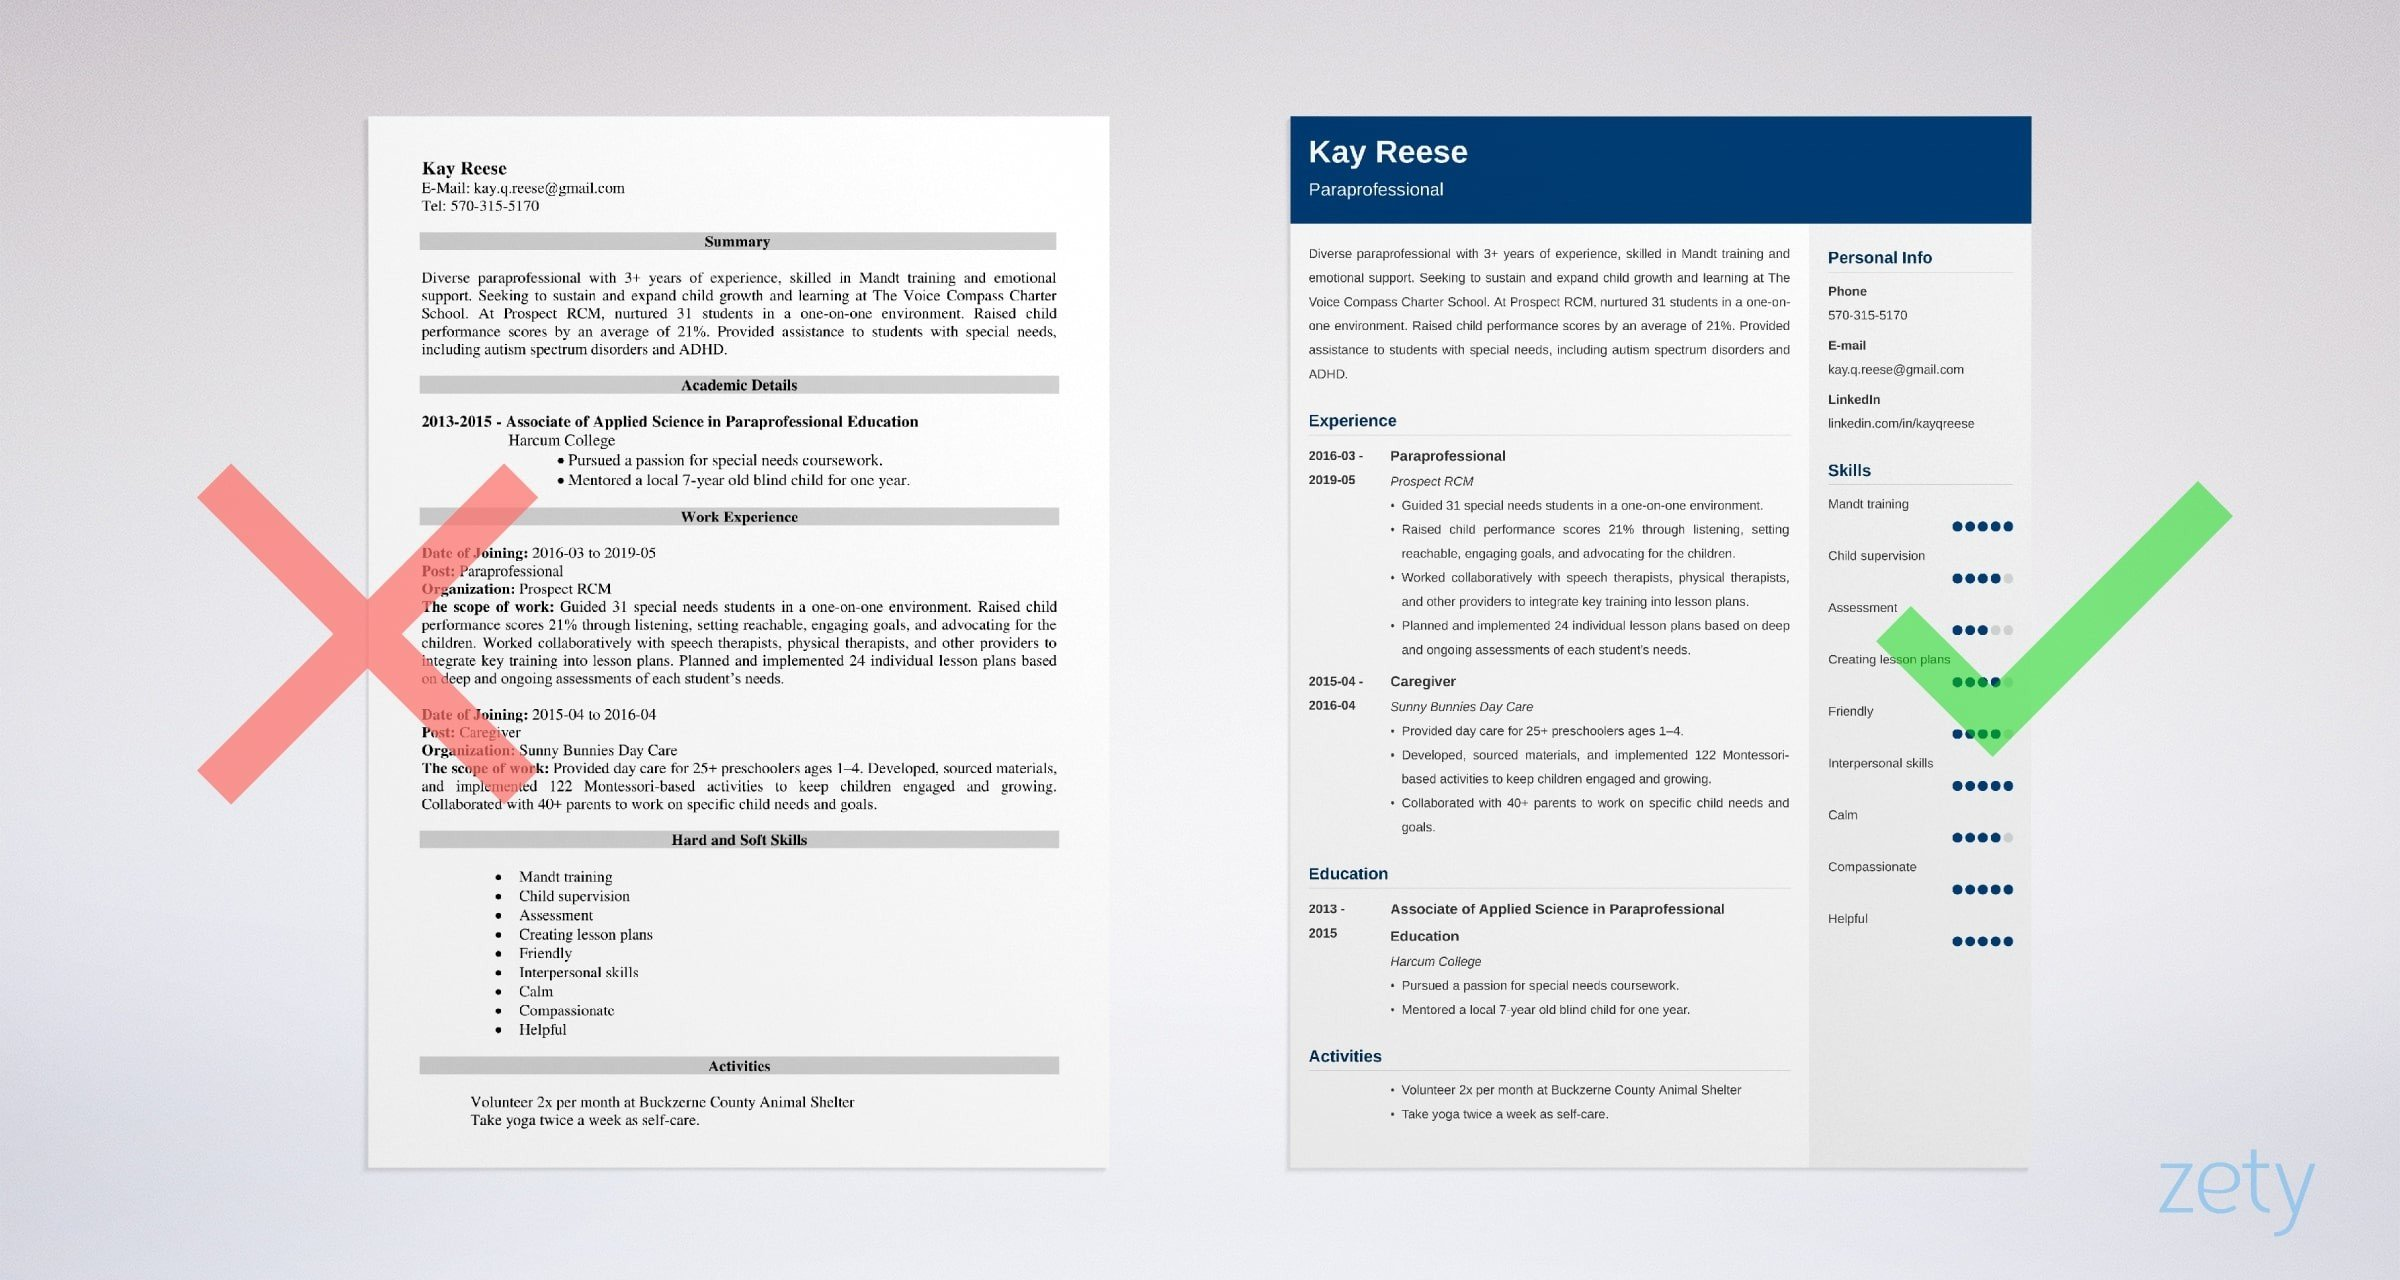 Paraprofessional Resume Sample And Full Writing Guide 20 Tips